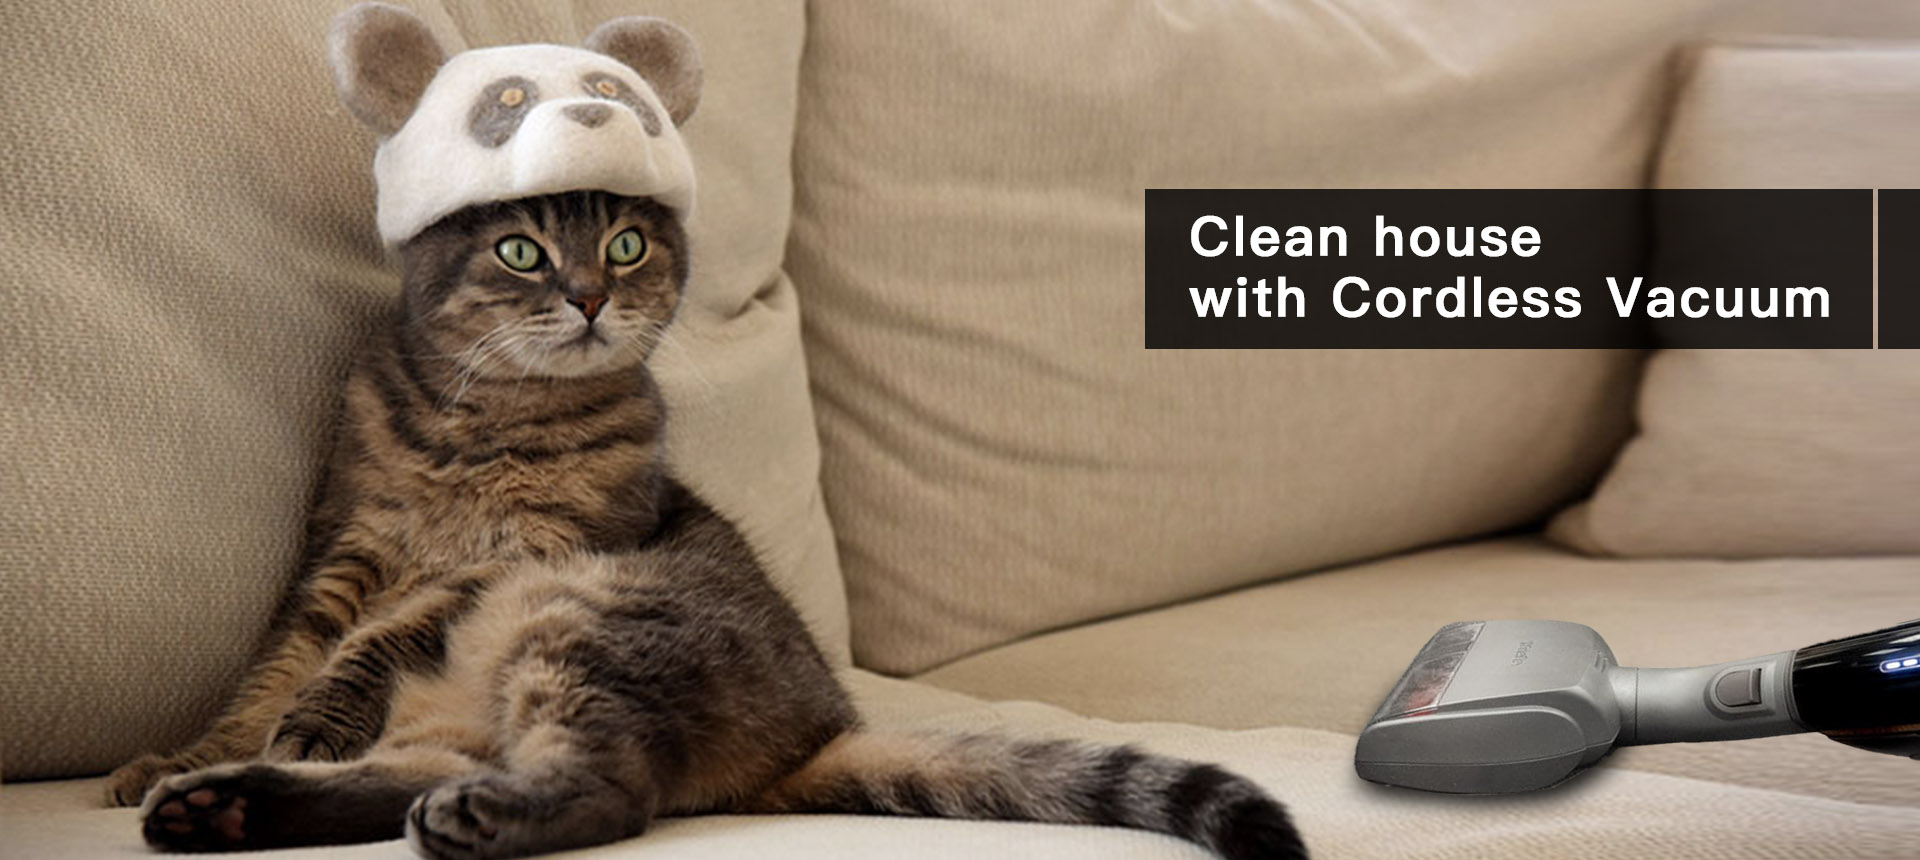 Clean house with hairy pets